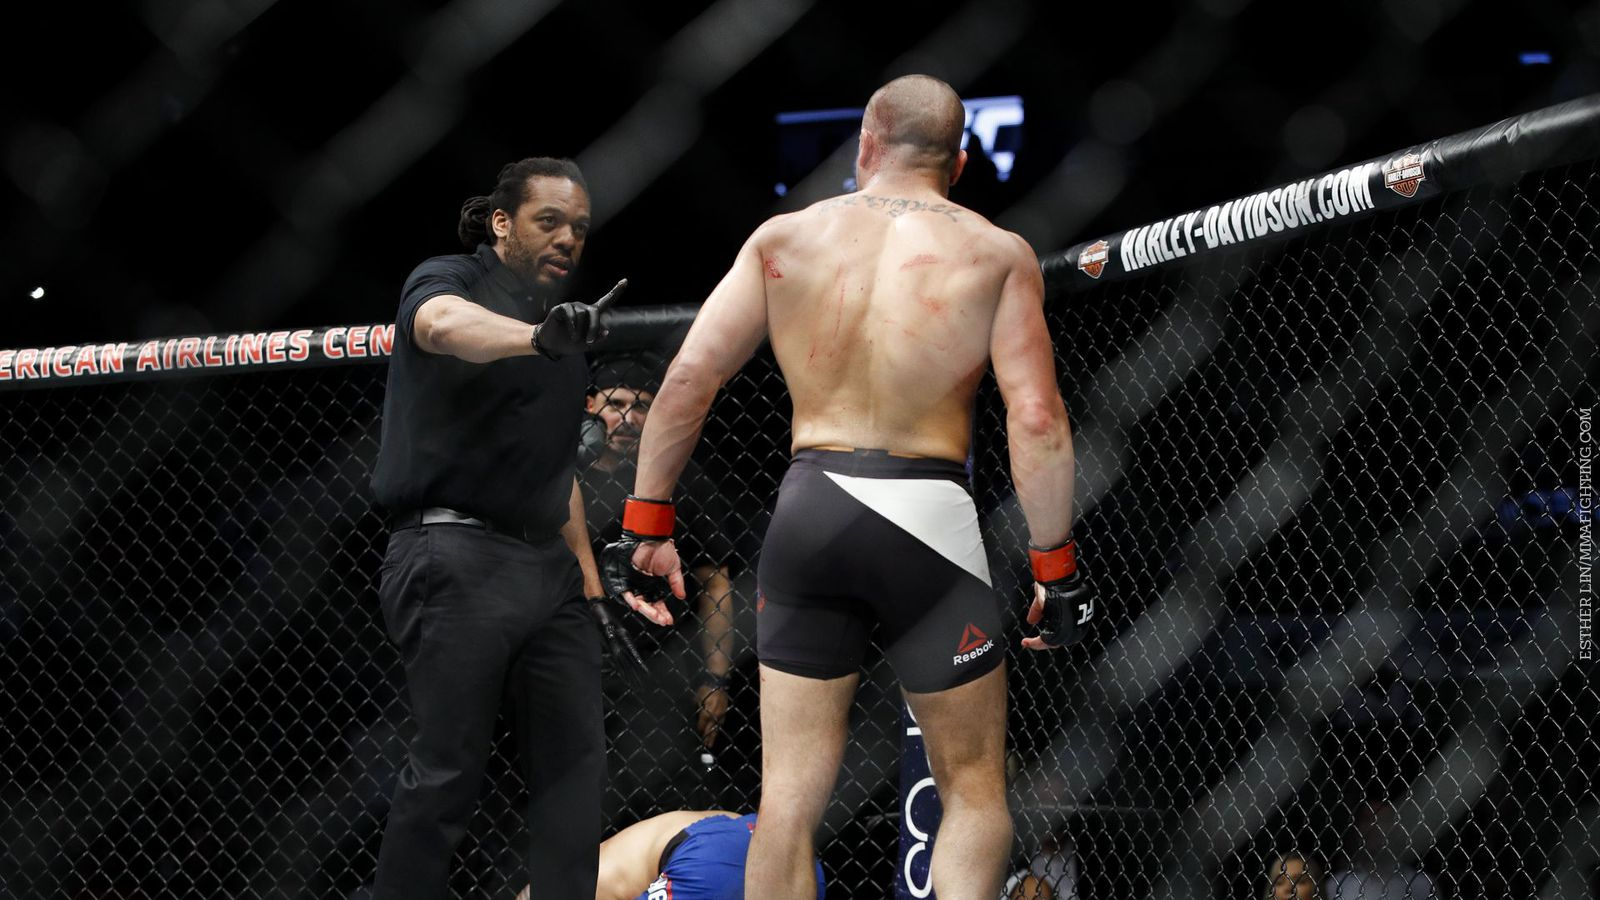 the rules of mma Ironically, these were the same rules employed for the ancient greek sport of pankration, a precursor to modern mixed martial arts however, even with the limited rules, these early fights appear downright barbaric in comparison to the polished ufc events of today.